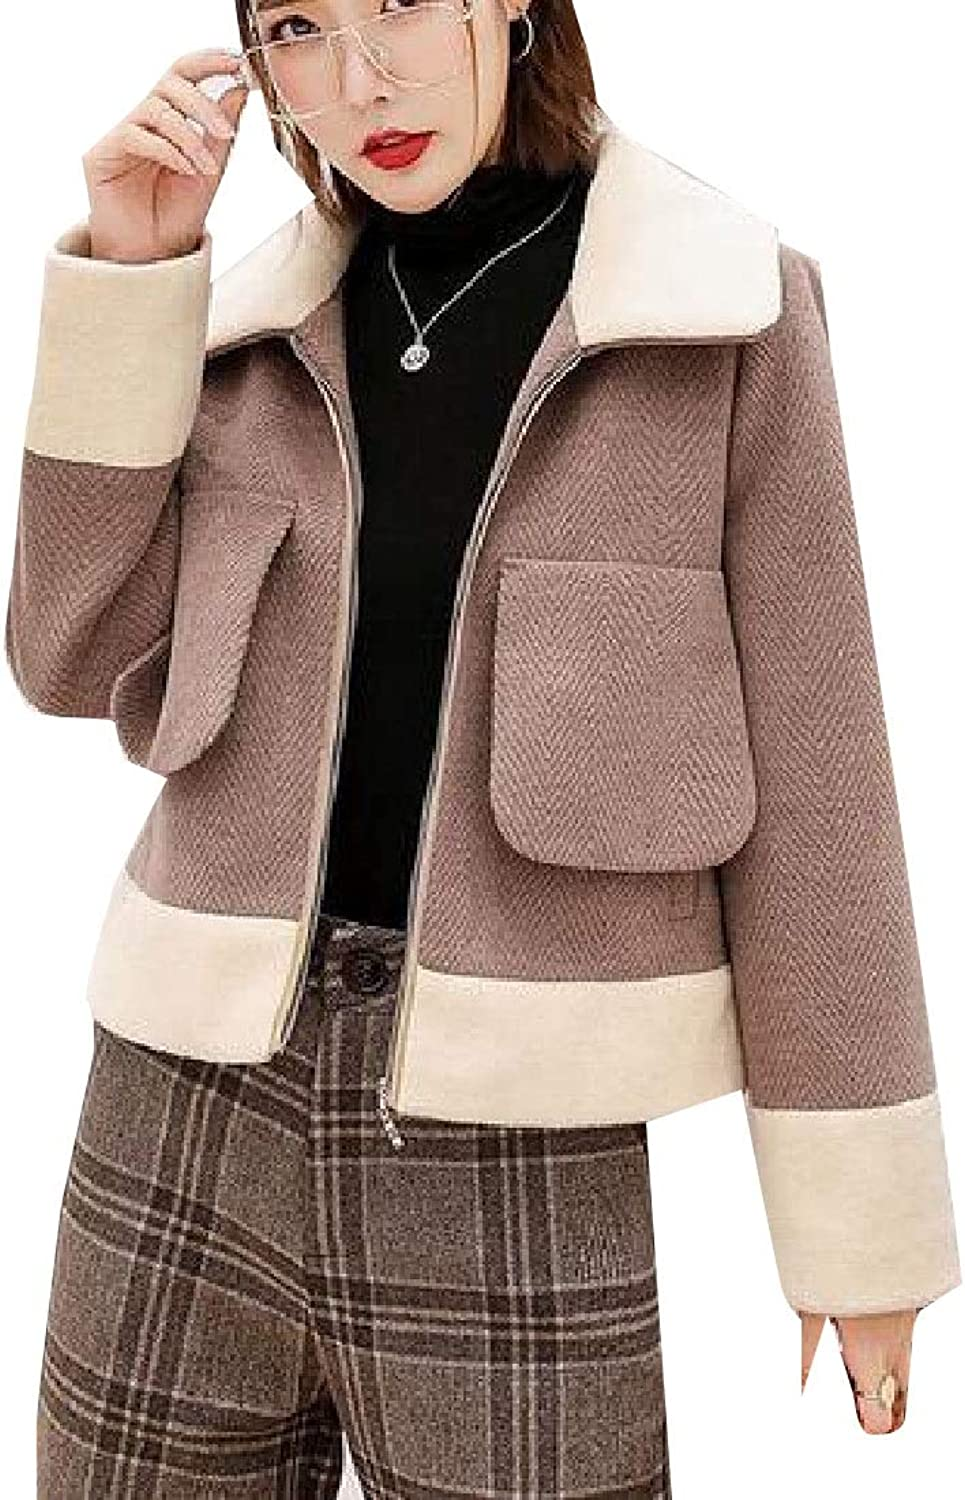 Maweisong Women Casual Wool Lapel LongSleeve Outwears Coat Short Pants